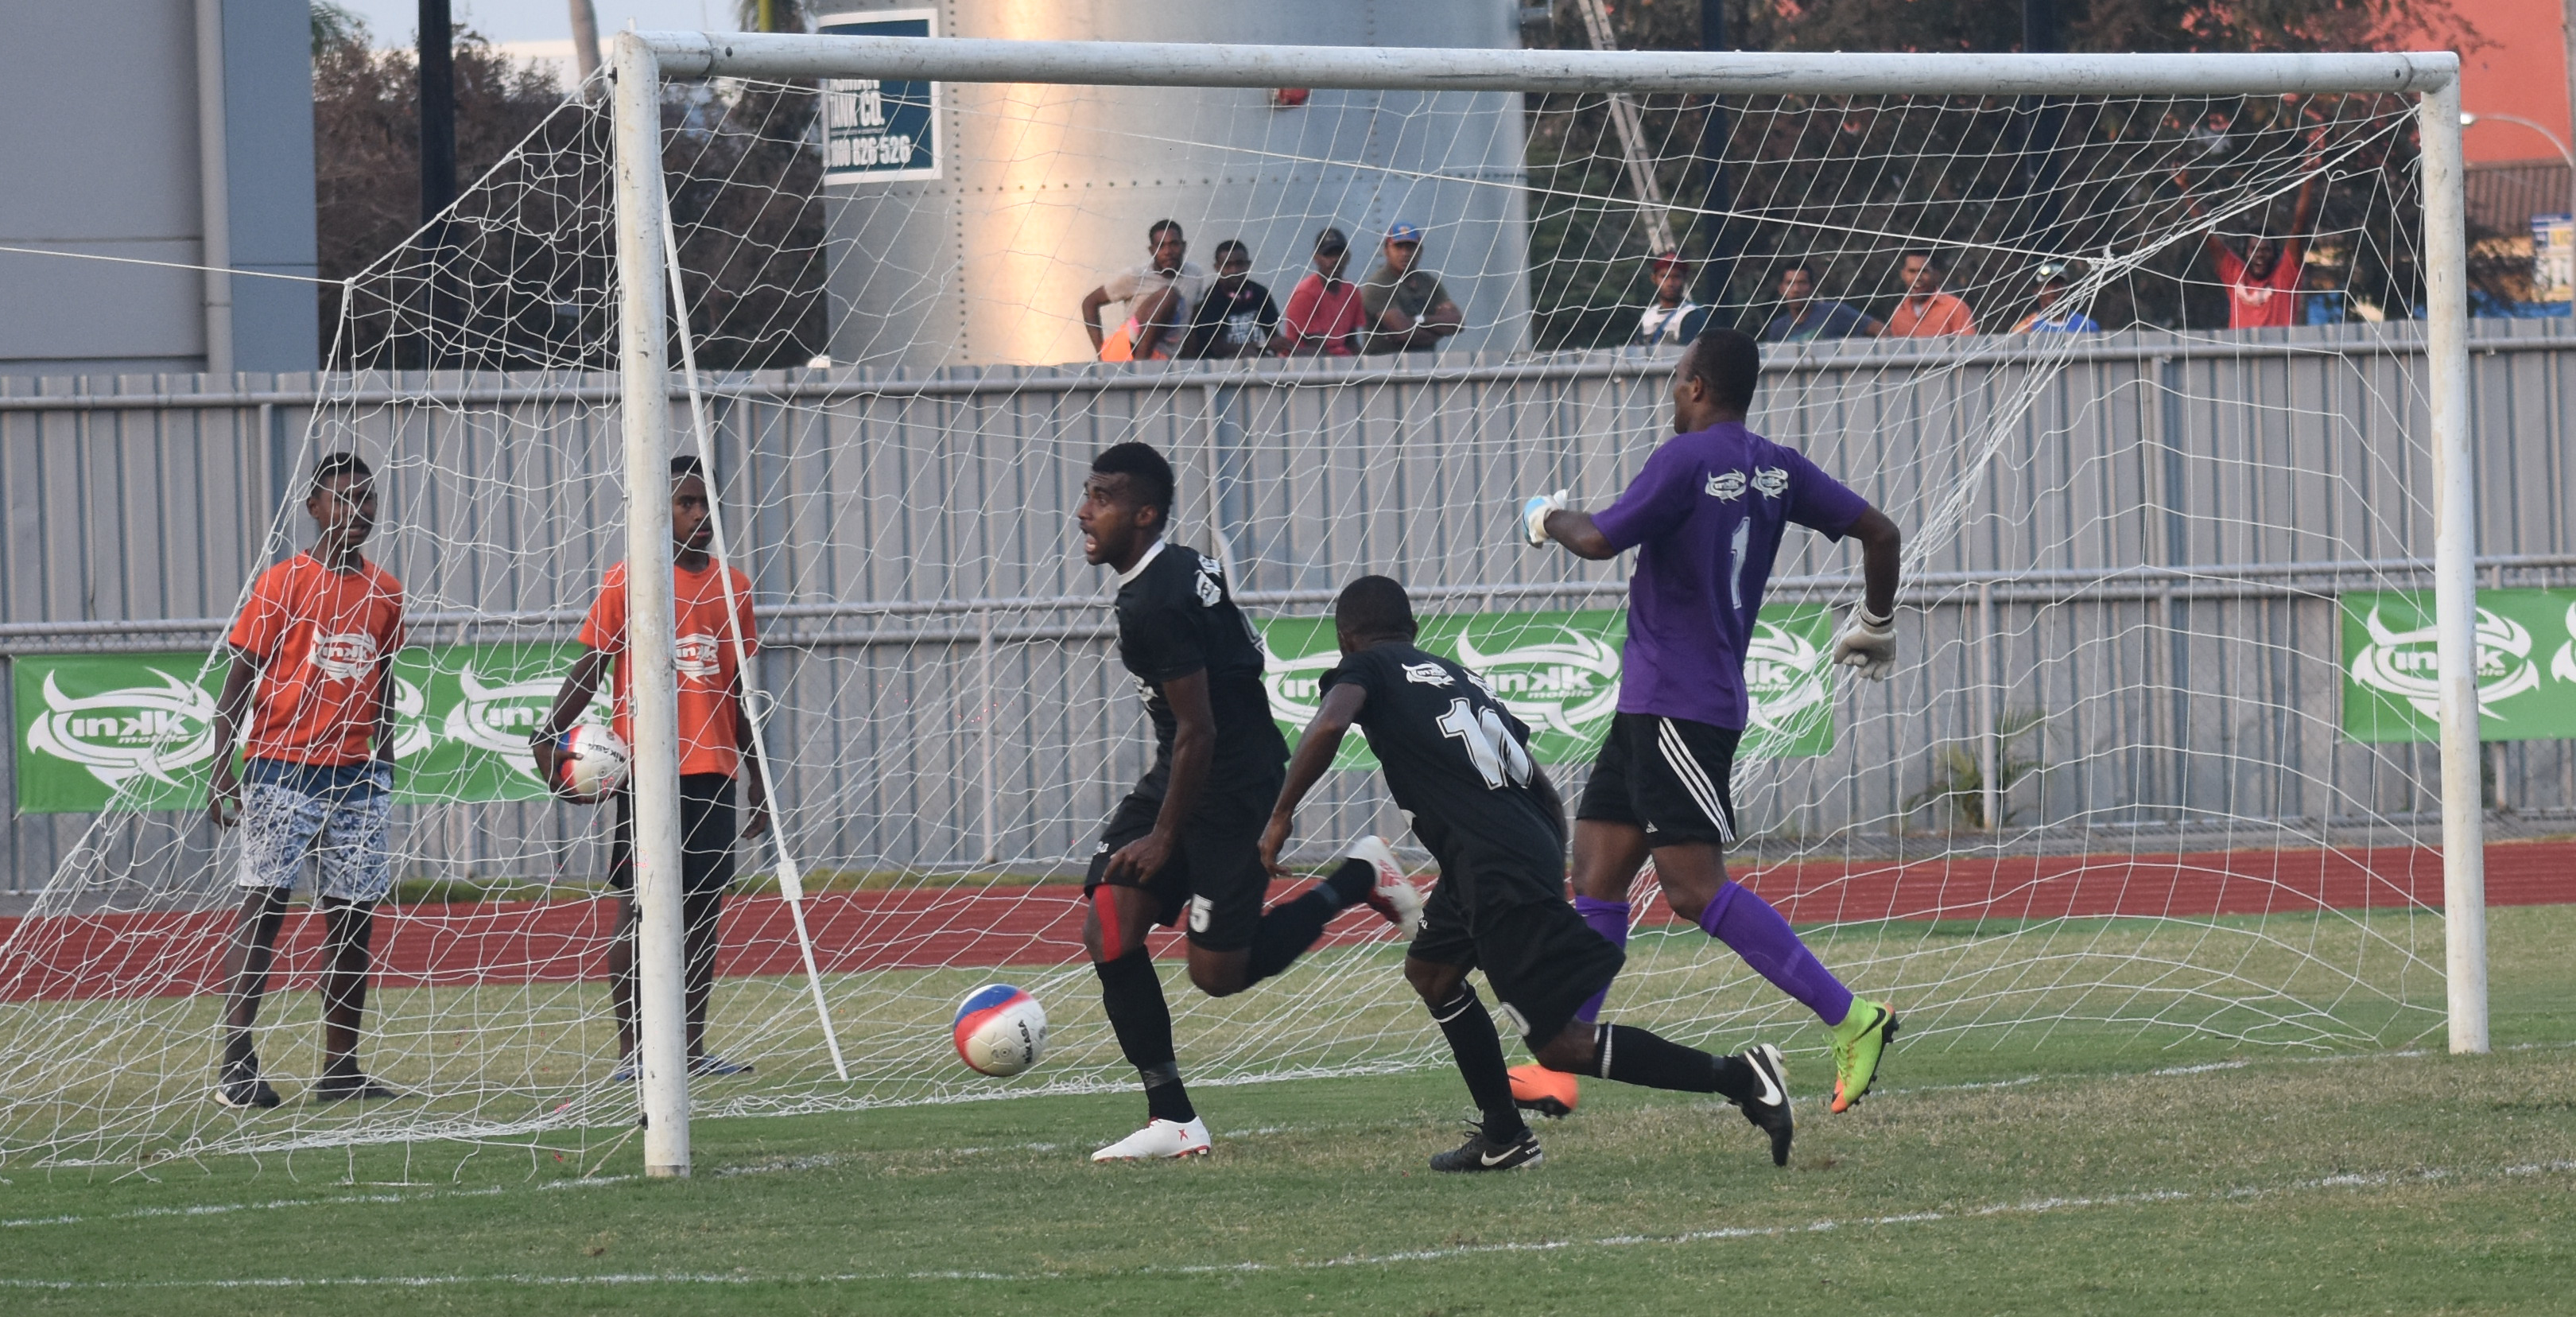 Ba striker Samuela Nabenia (left) slams in the second goal against Suva in the Inkk Mobile Battle of the  Giants final at Churchill Park, Lautoka on July 29, 2018. Photo: Waisea Nasokia